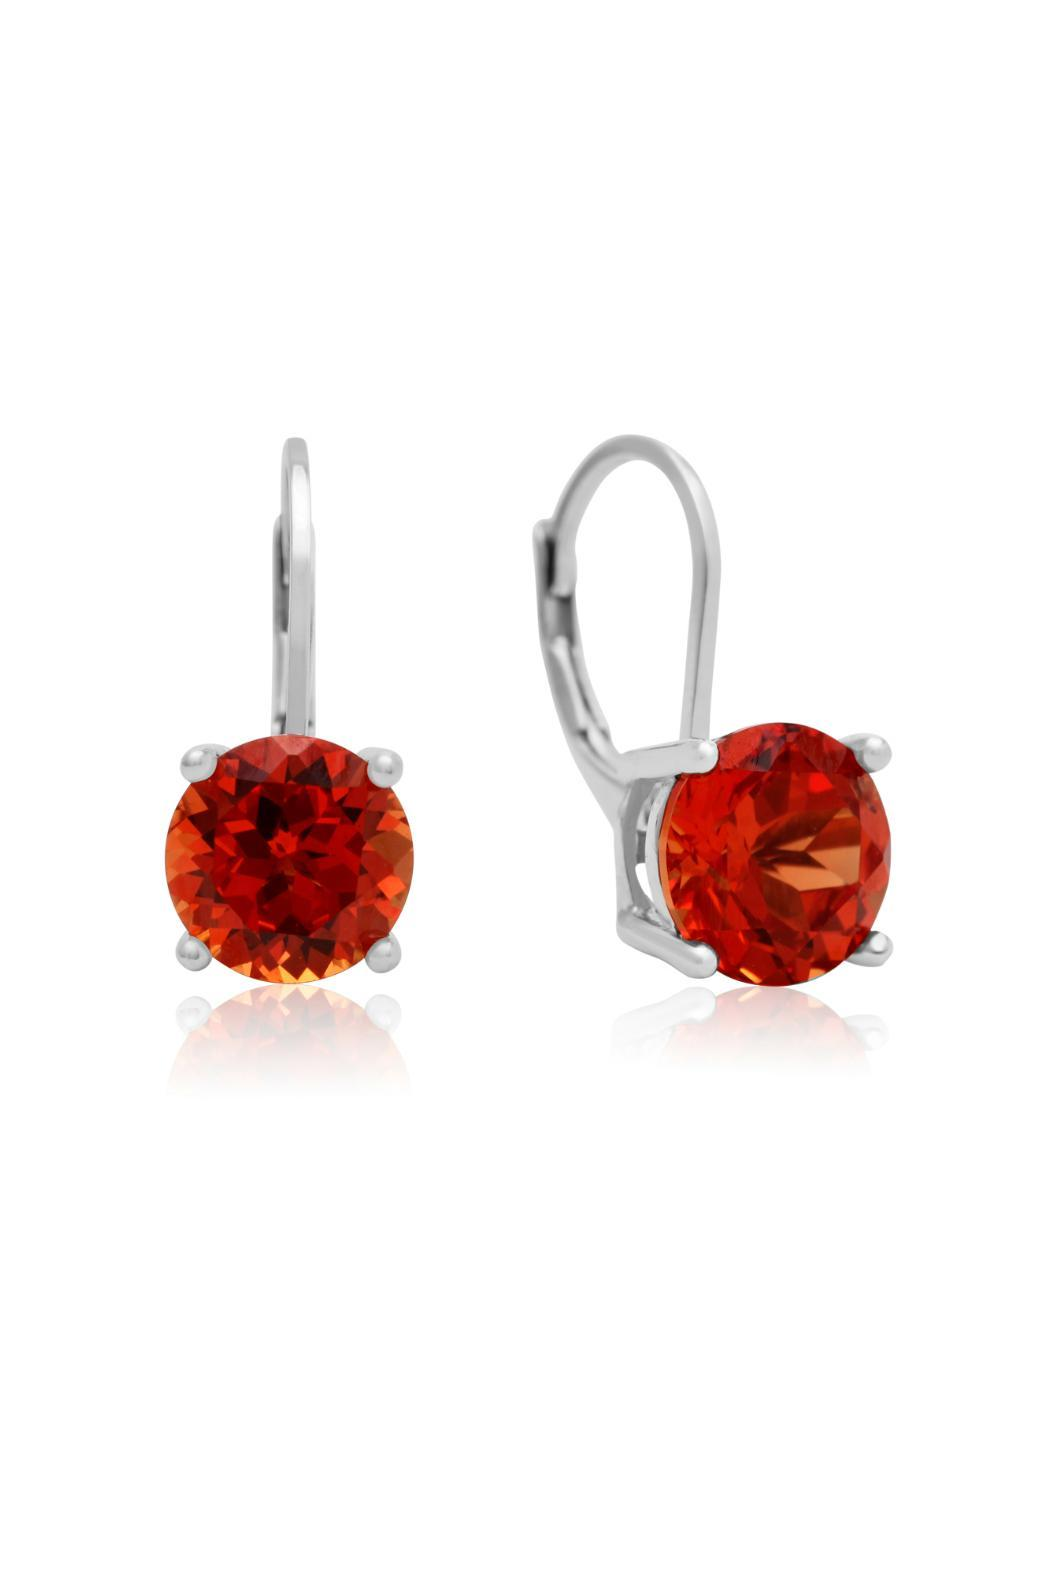 jewelry aide chatham dark sapphire eco orange earrings products friendly padparadscha